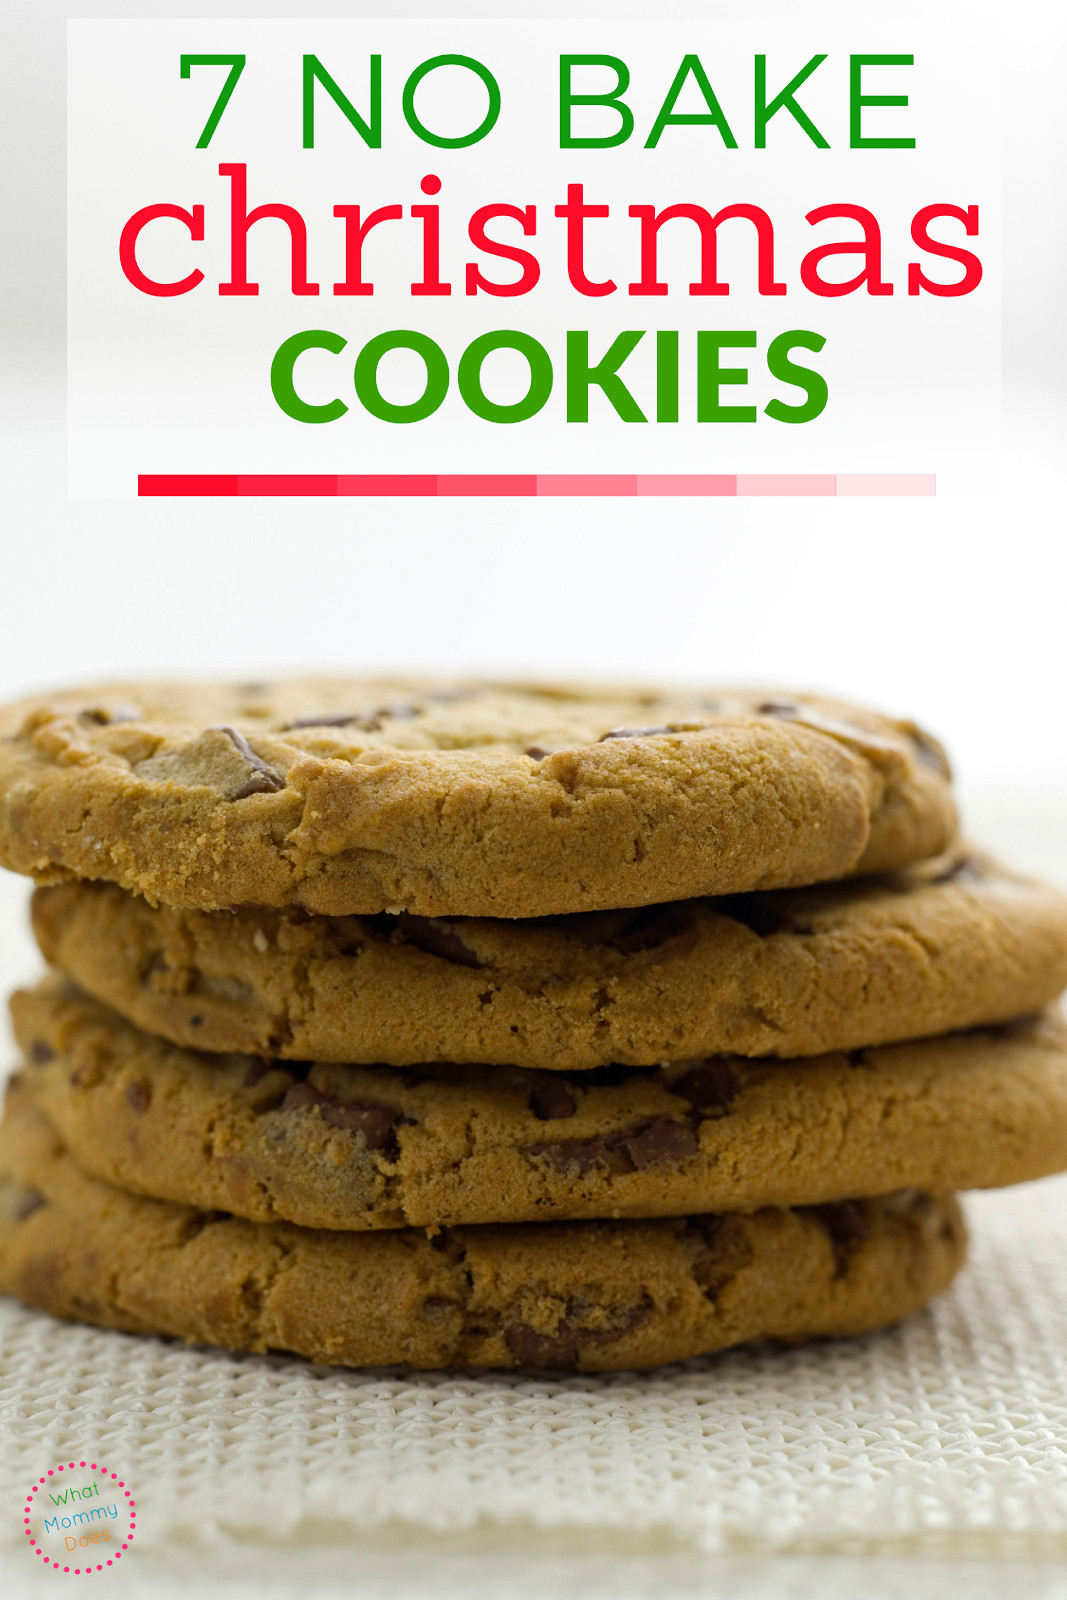 Easy No Bake Christmas Cookies  7 No Bake Christmas Cookies What Mommy Does